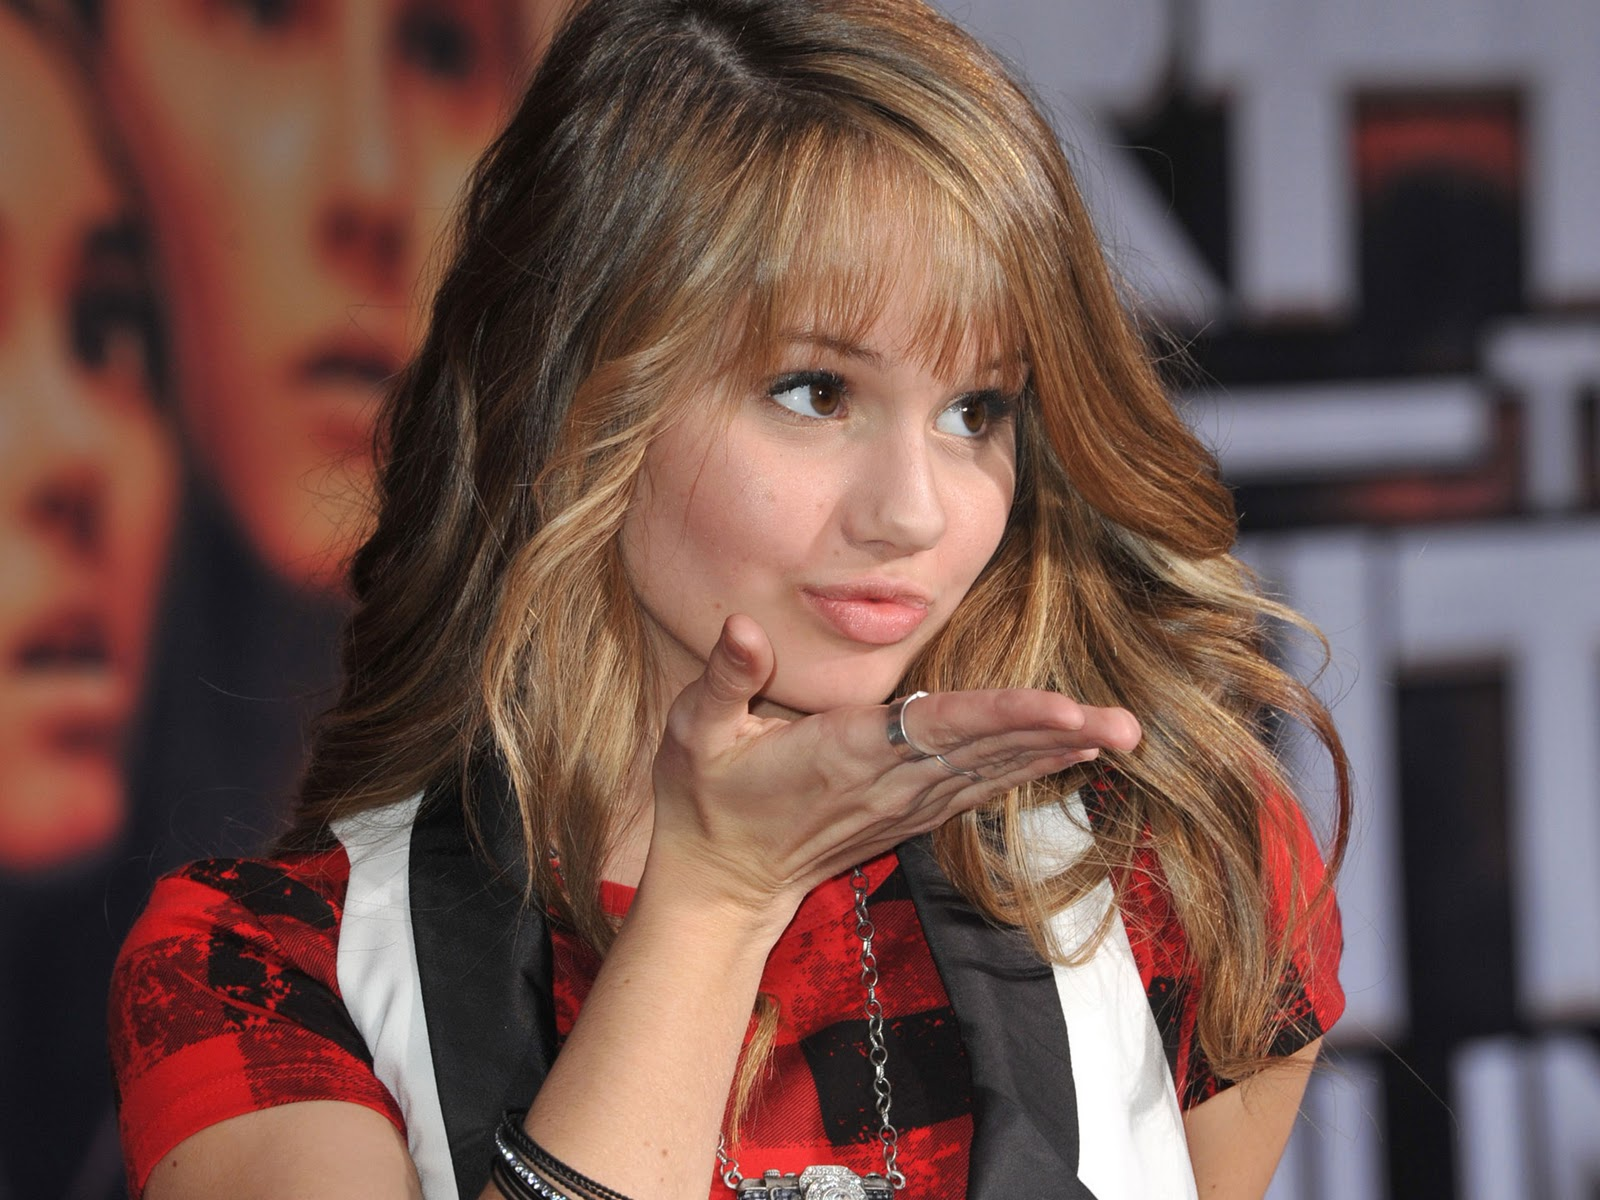 debby ryan hot and sexy wallpapers debby ryan new wallpapers debby